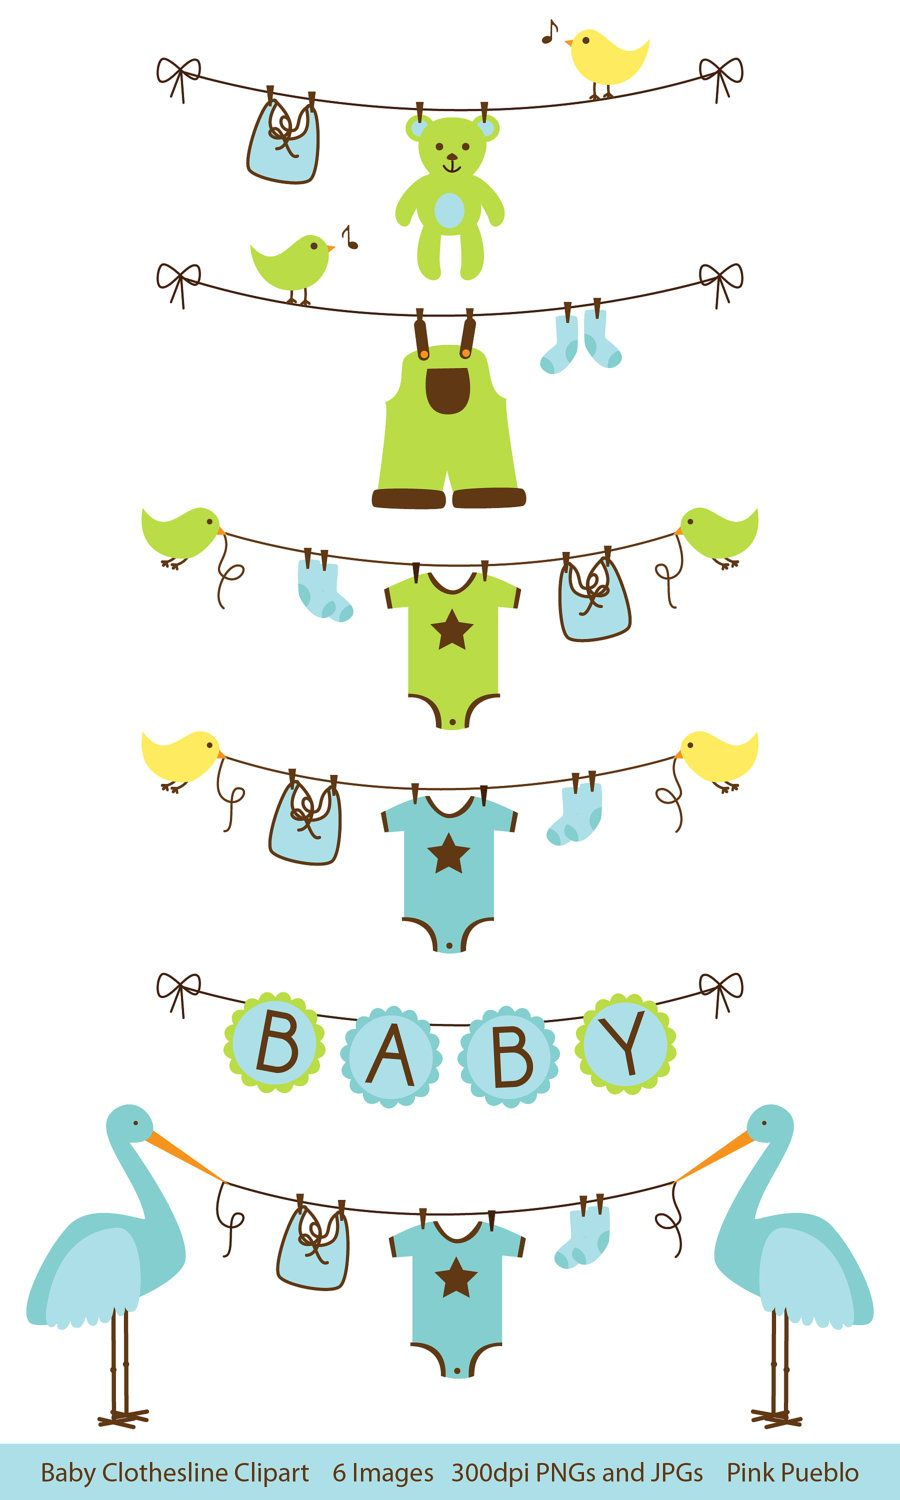 Ting clipart clipart transparent download Baby Boy Clothesline Clipart Clip Art, Baby Shower Clip Art Clipart ... clipart transparent download